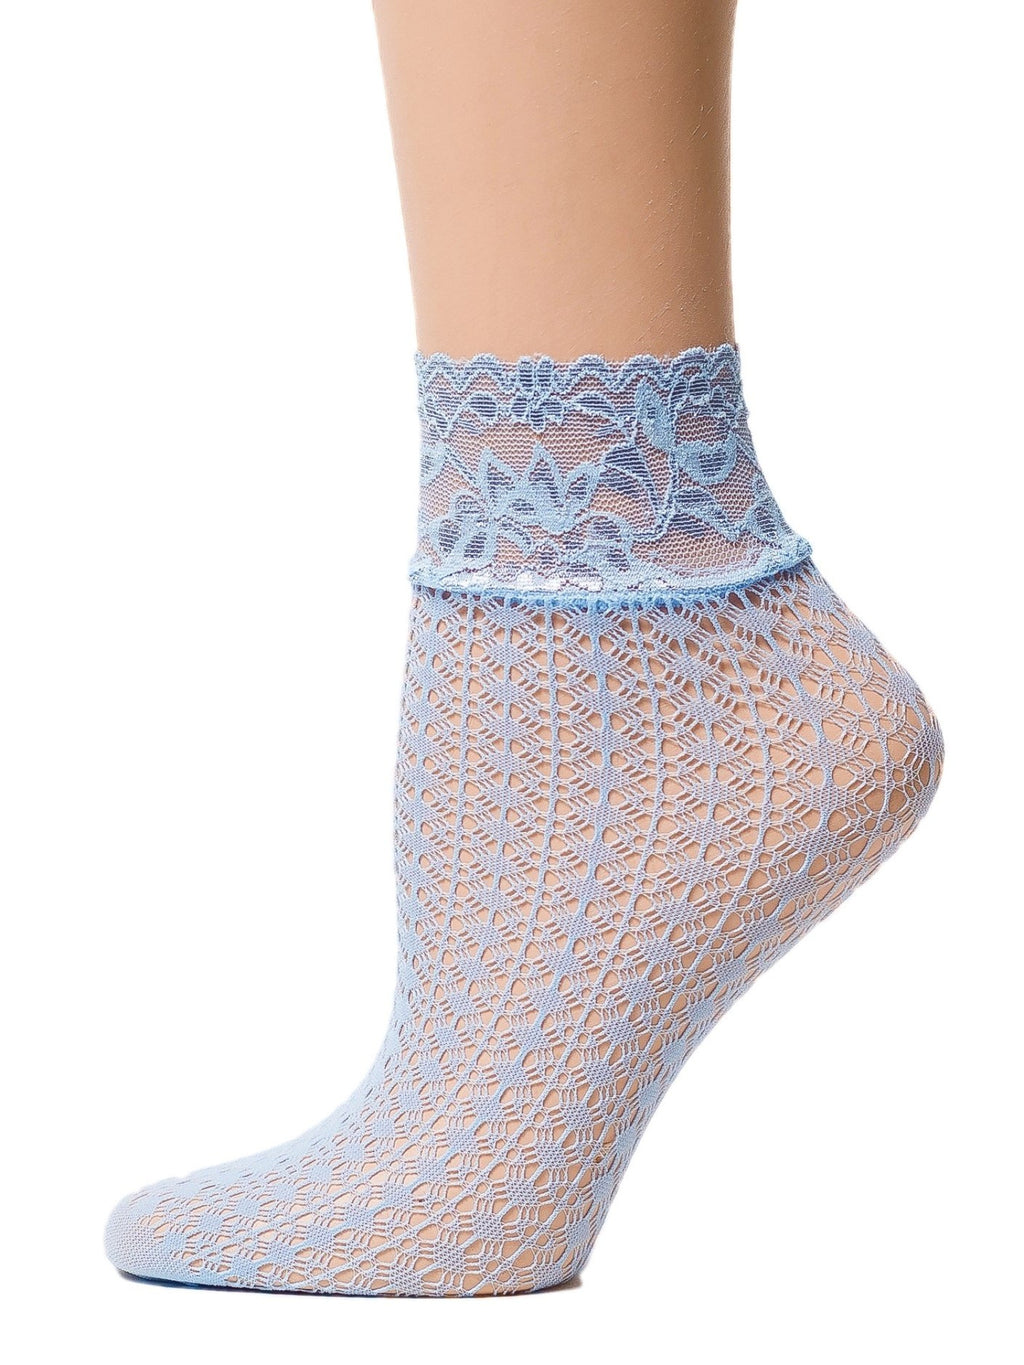 Elegant Sea Blue Mesh Socks - Global Trendz Fashion®